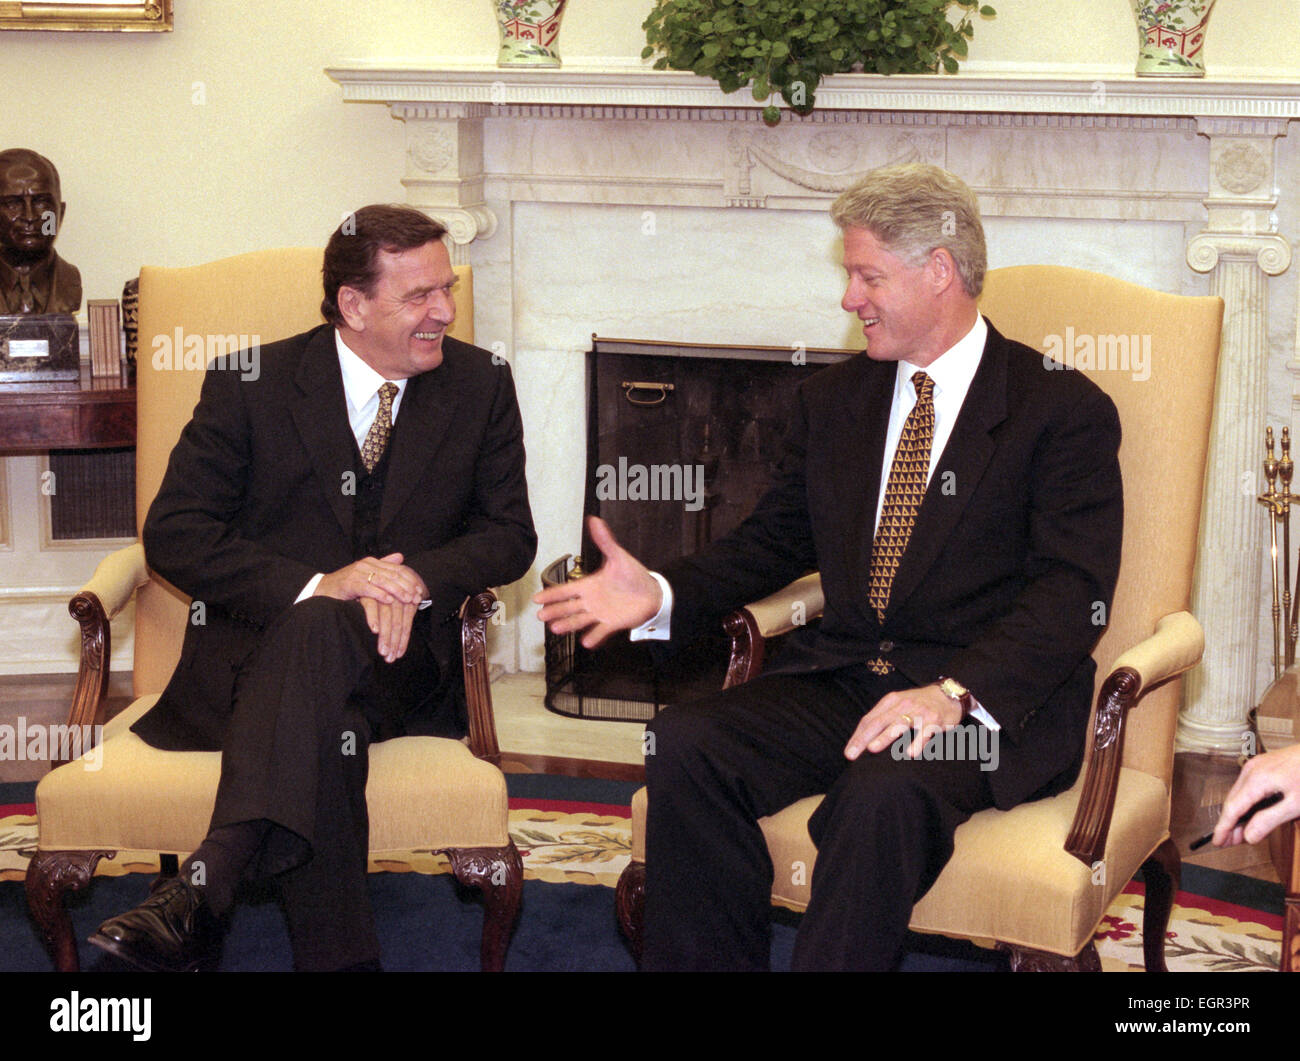 stock photo us president bill clinton meets with german chancellor elect gerhard schroeder in the oval office of the white house october 9 bill clinton oval office